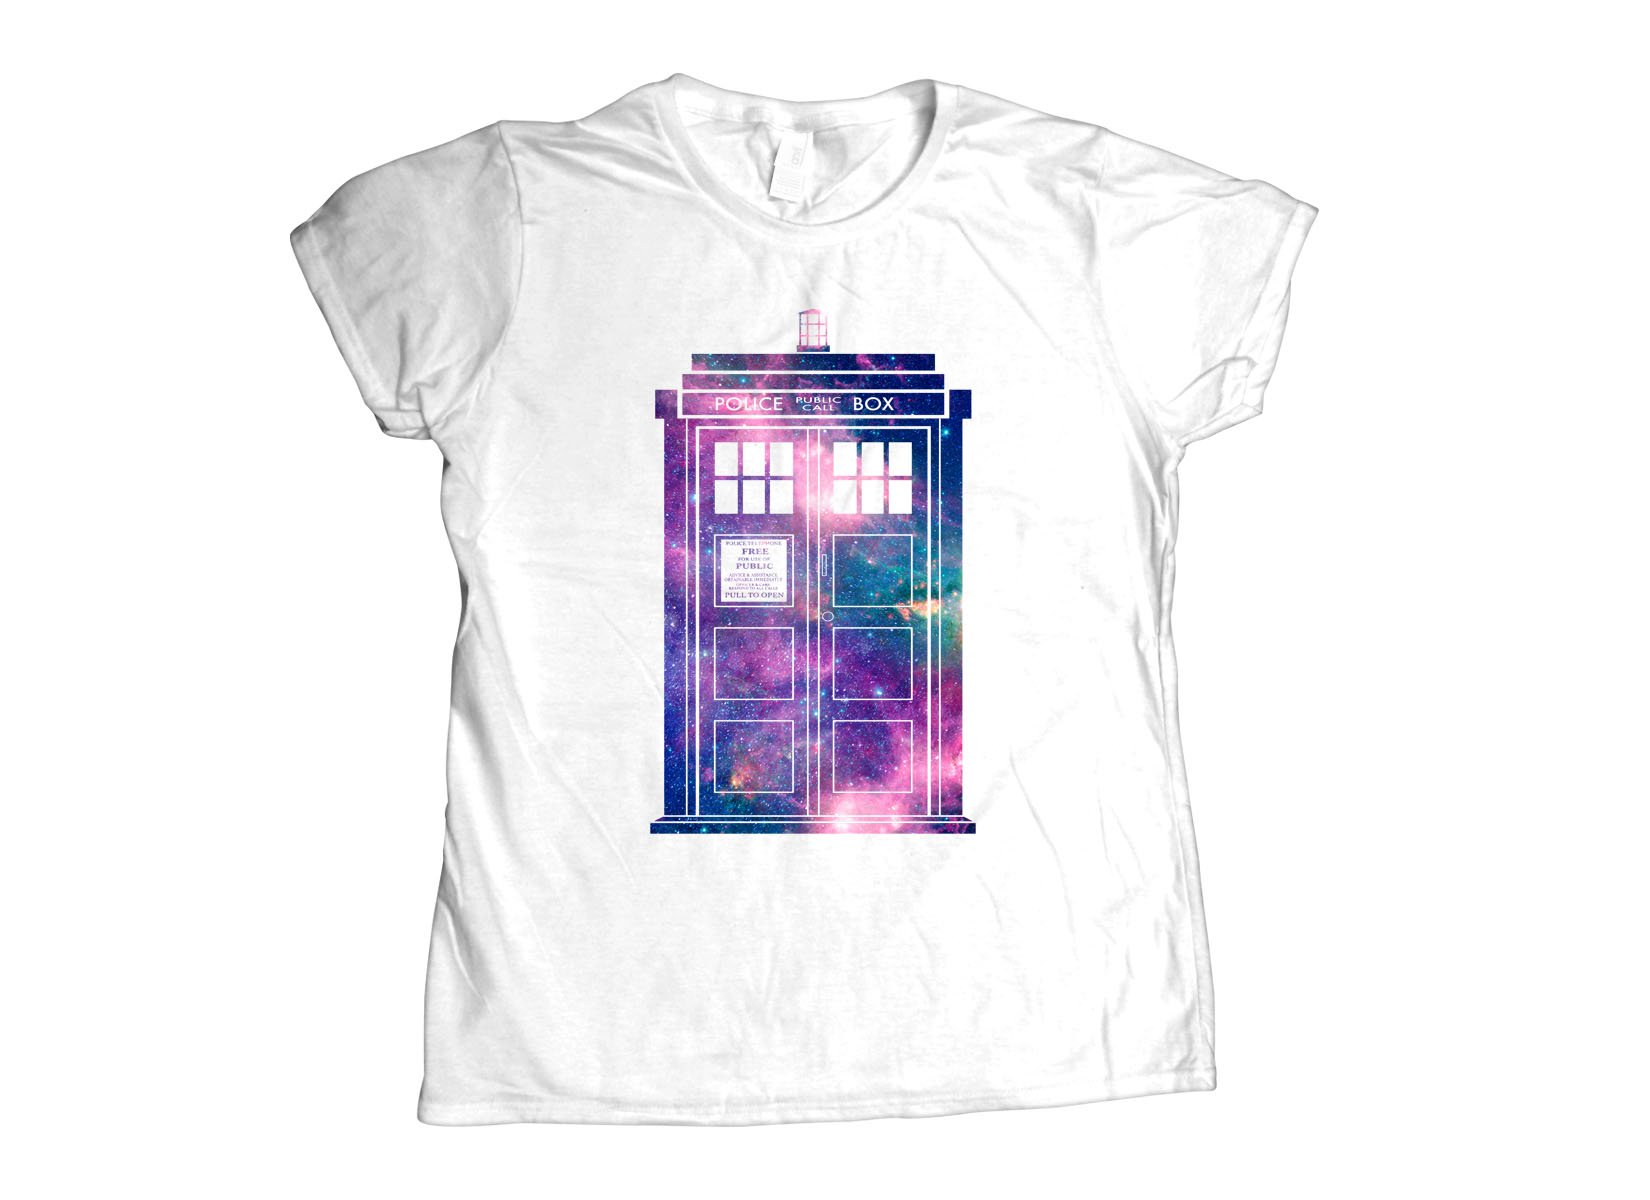 Police Box on Womens T-Shirt